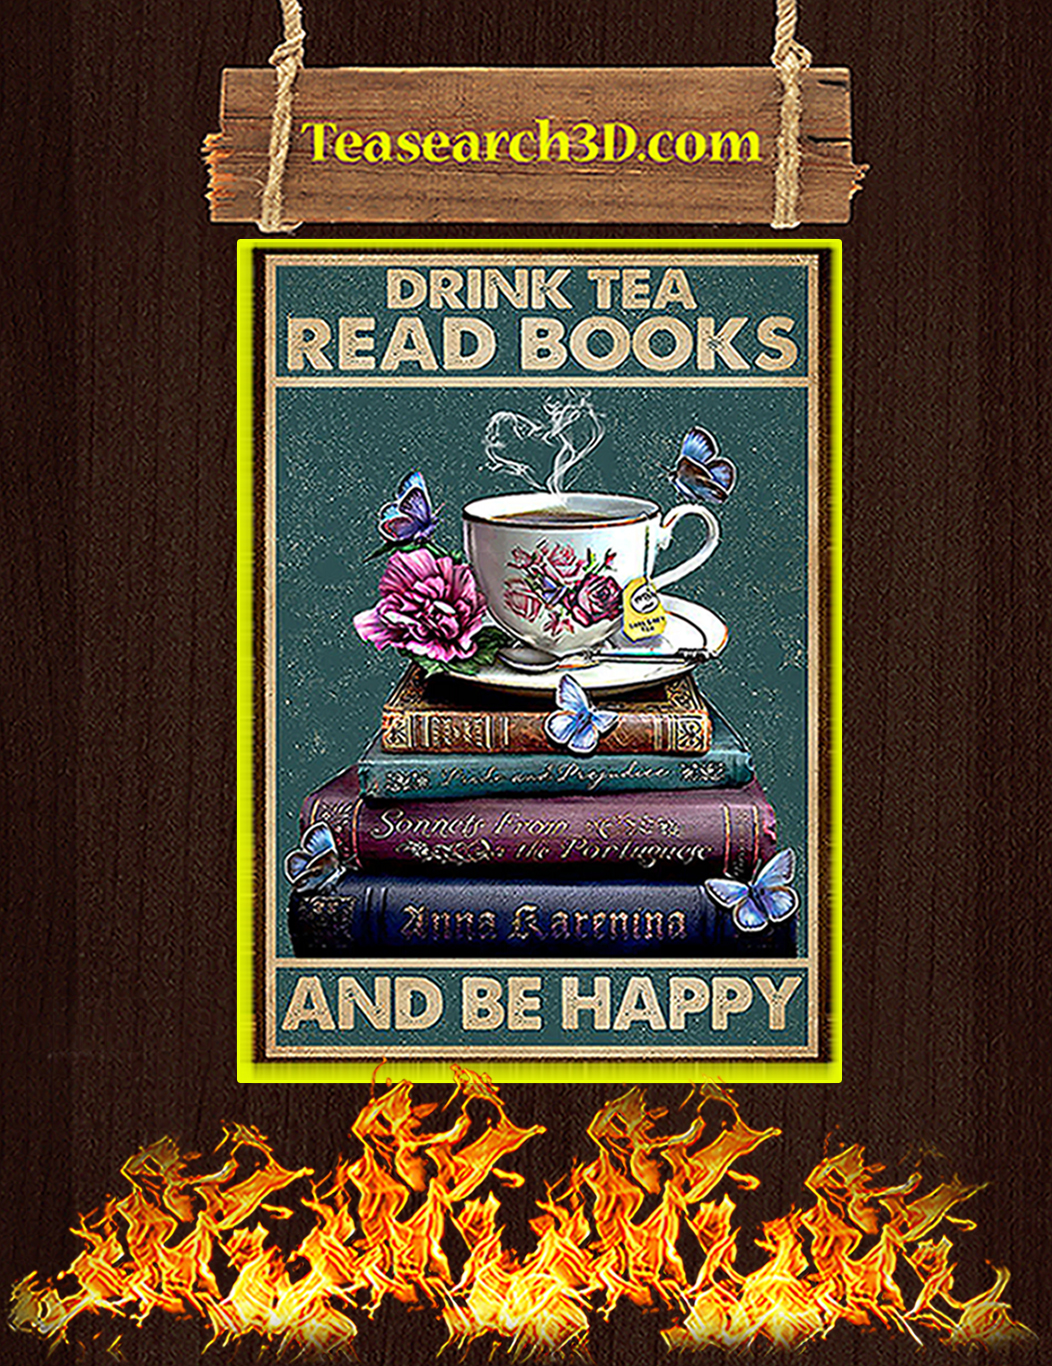 Drink tea read books and be happy poster A1